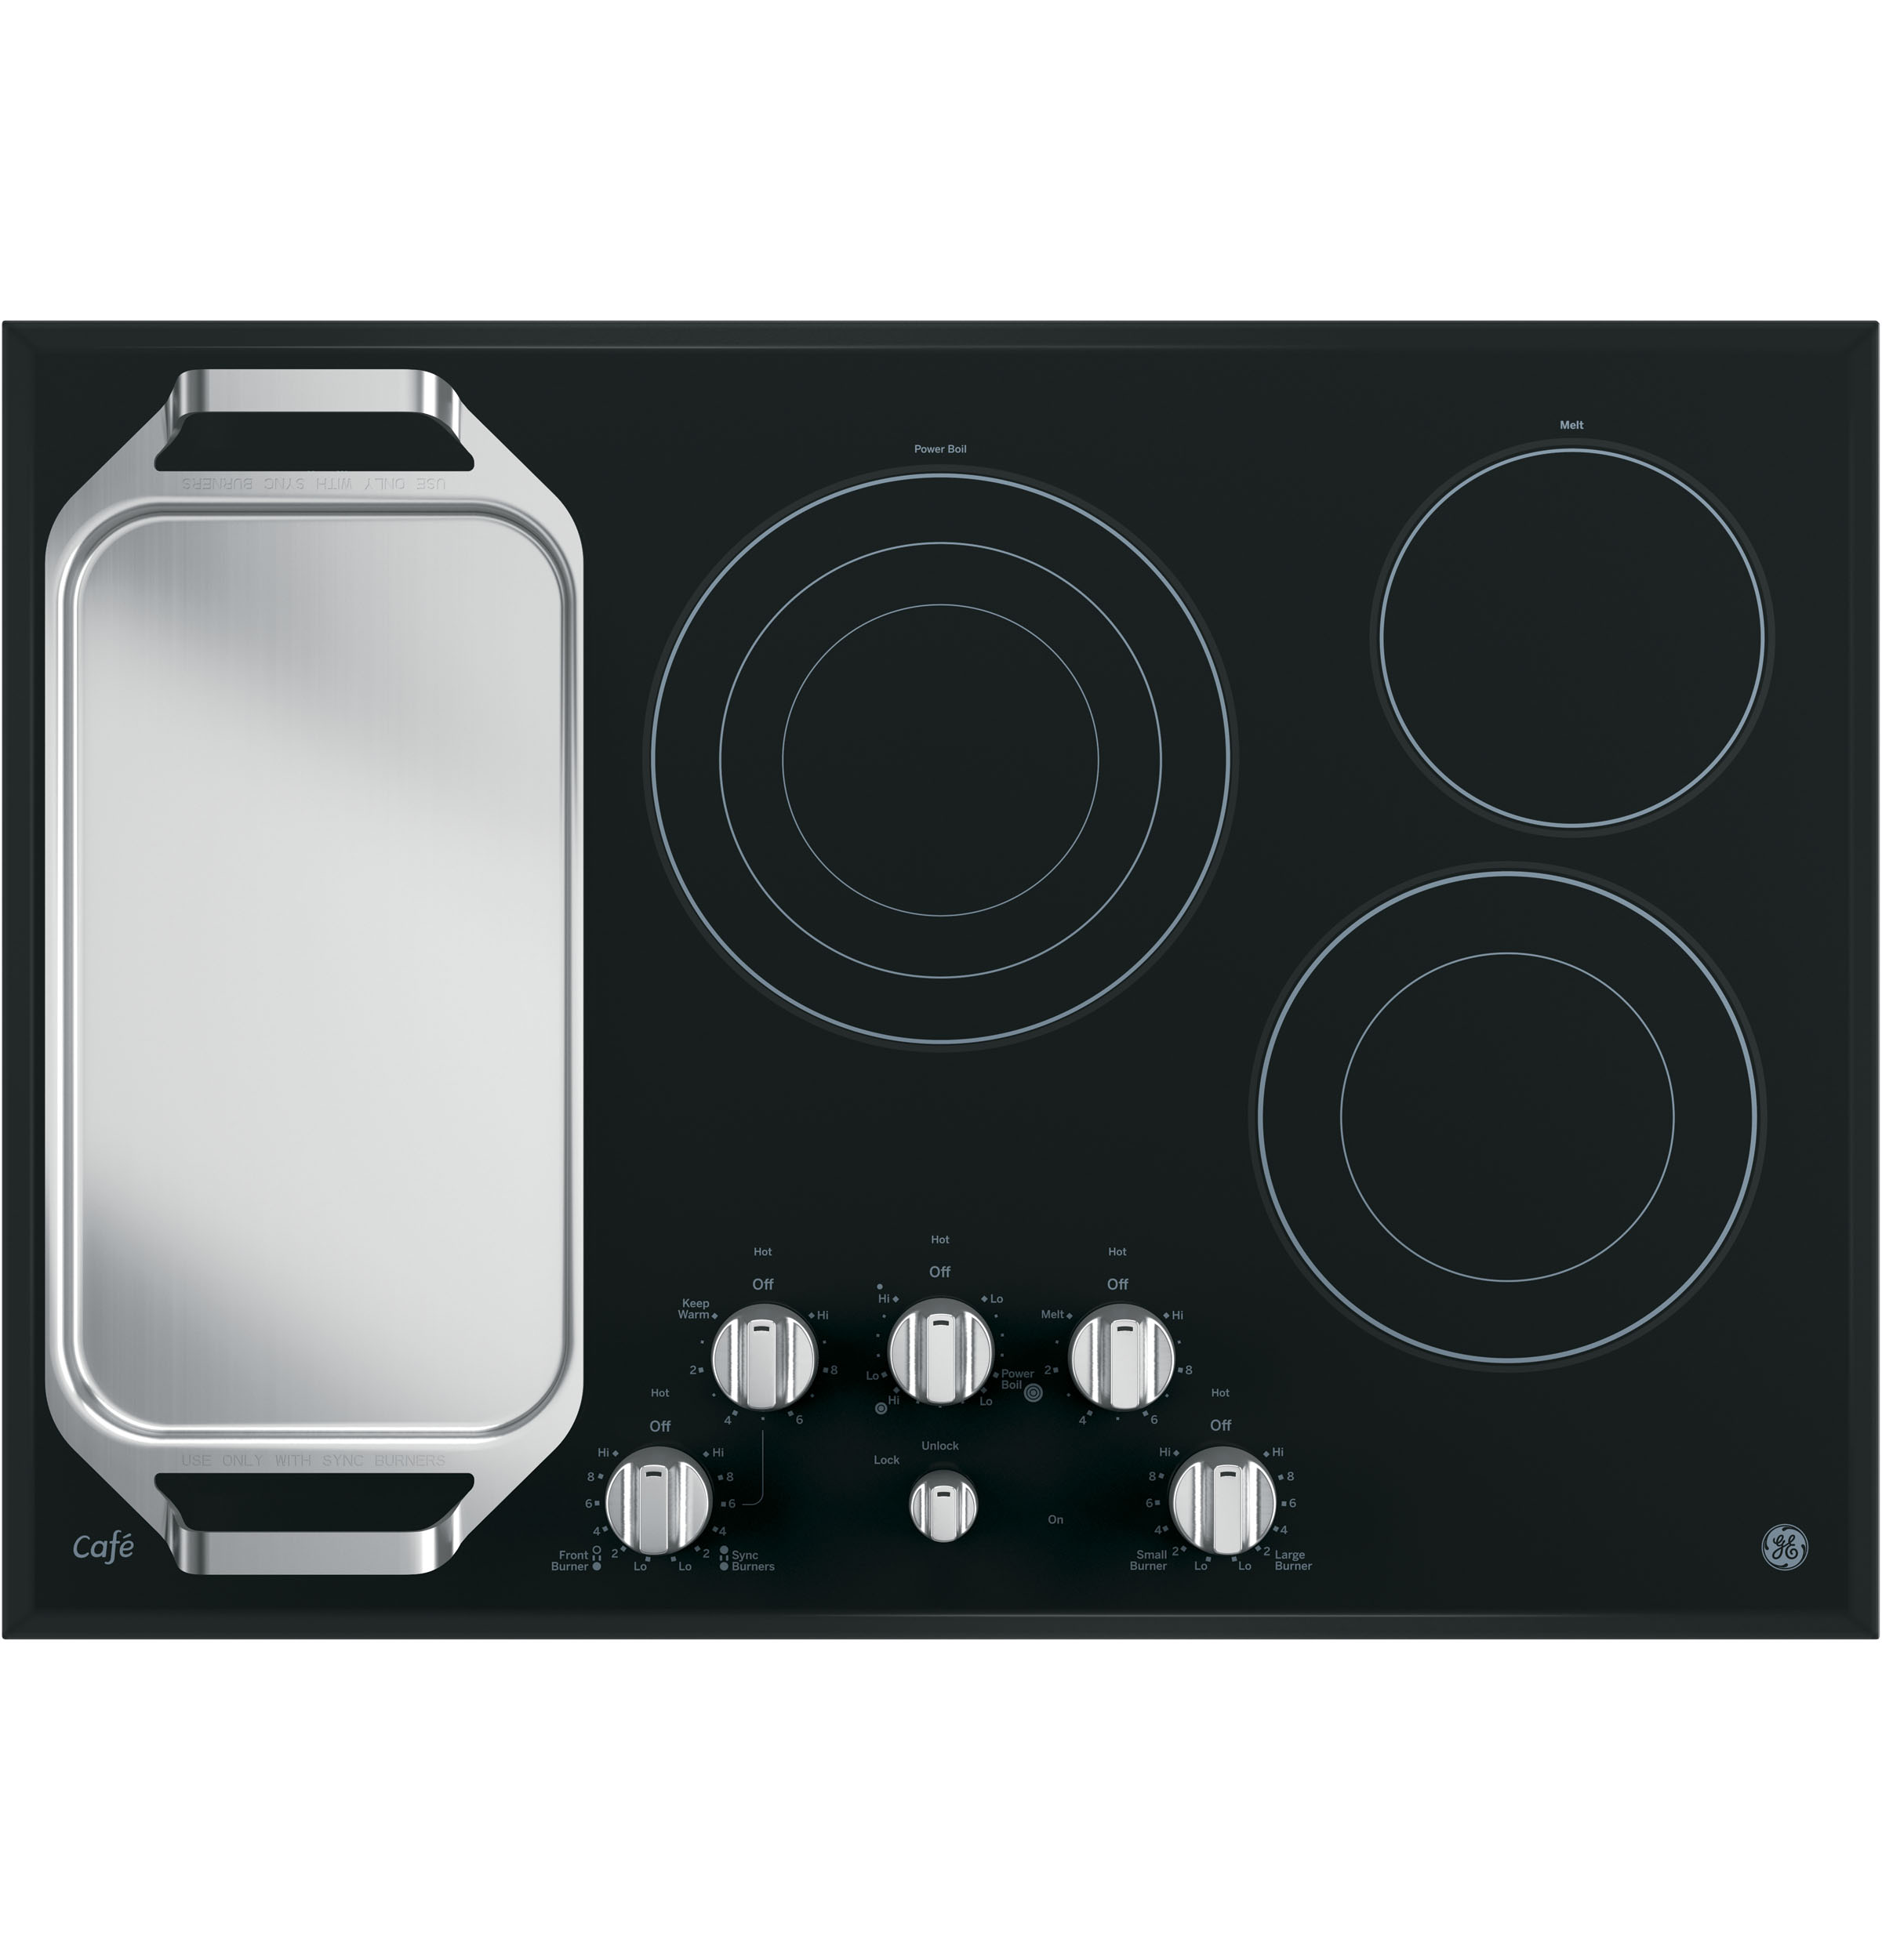 Discount Electric Cooktops 30 In ~ Inch ge cafe electric cooktop reviews review